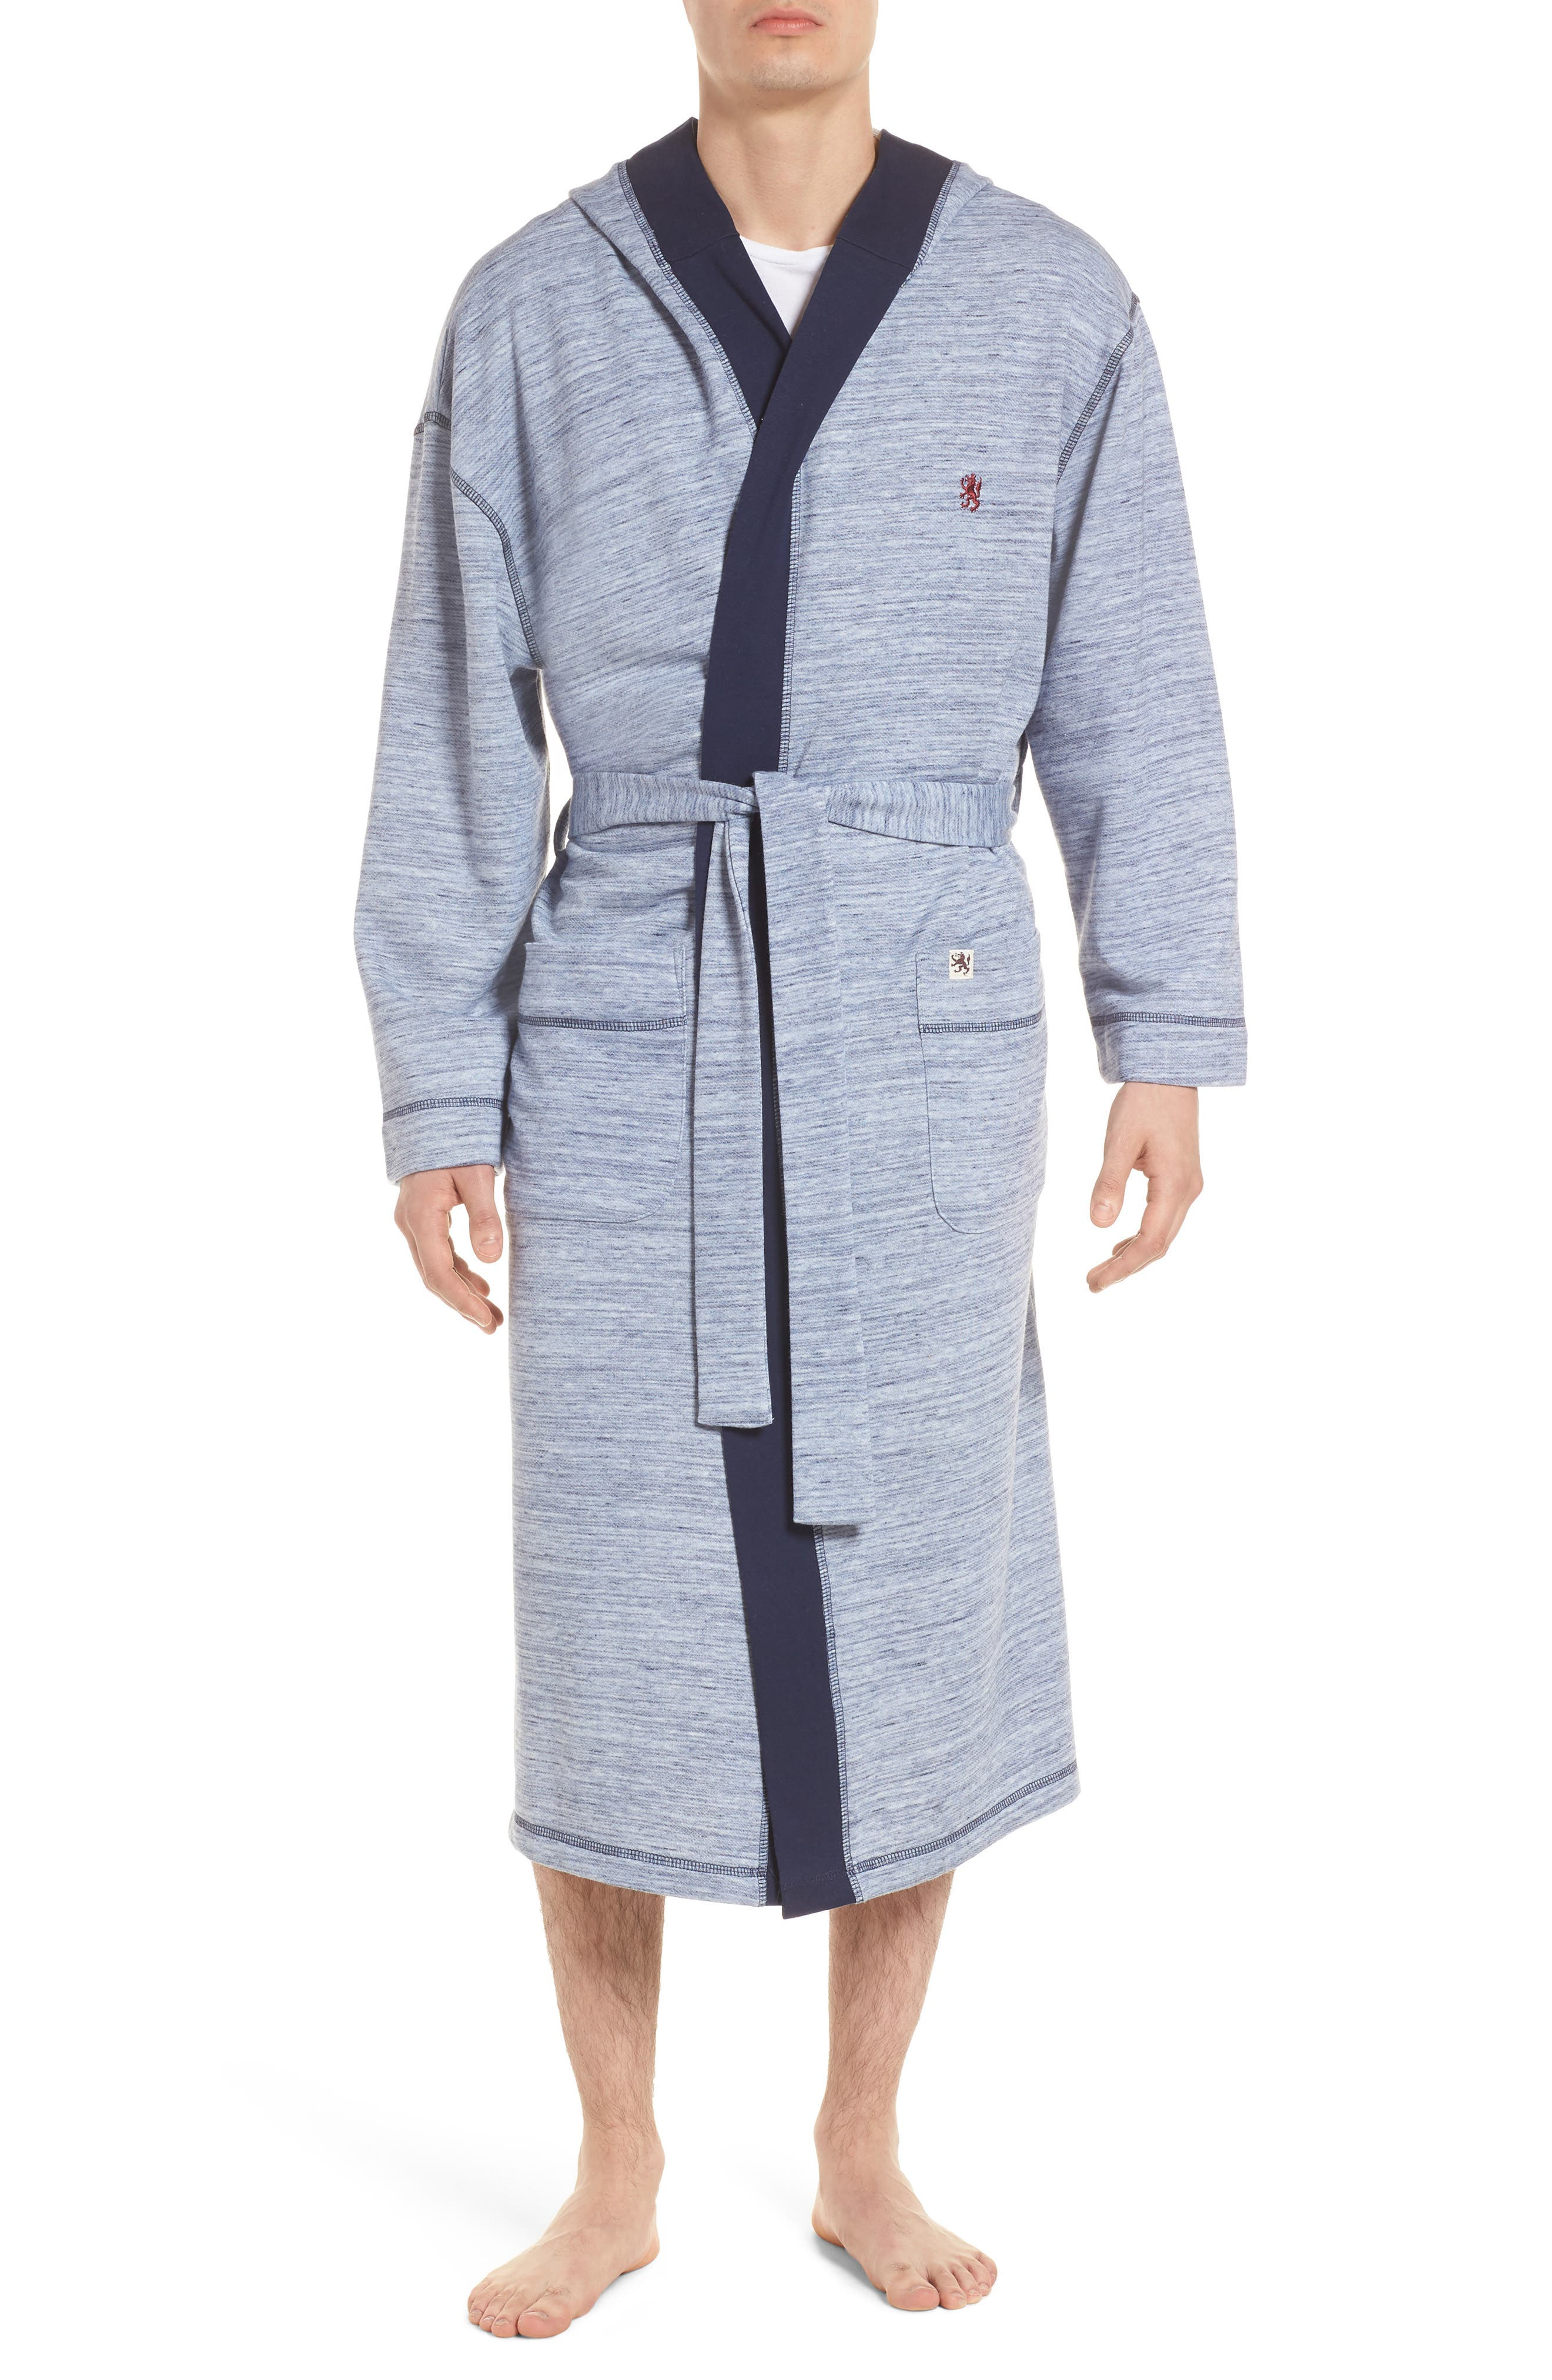 Swept In Waves Robe,                             Main thumbnail 1, color,